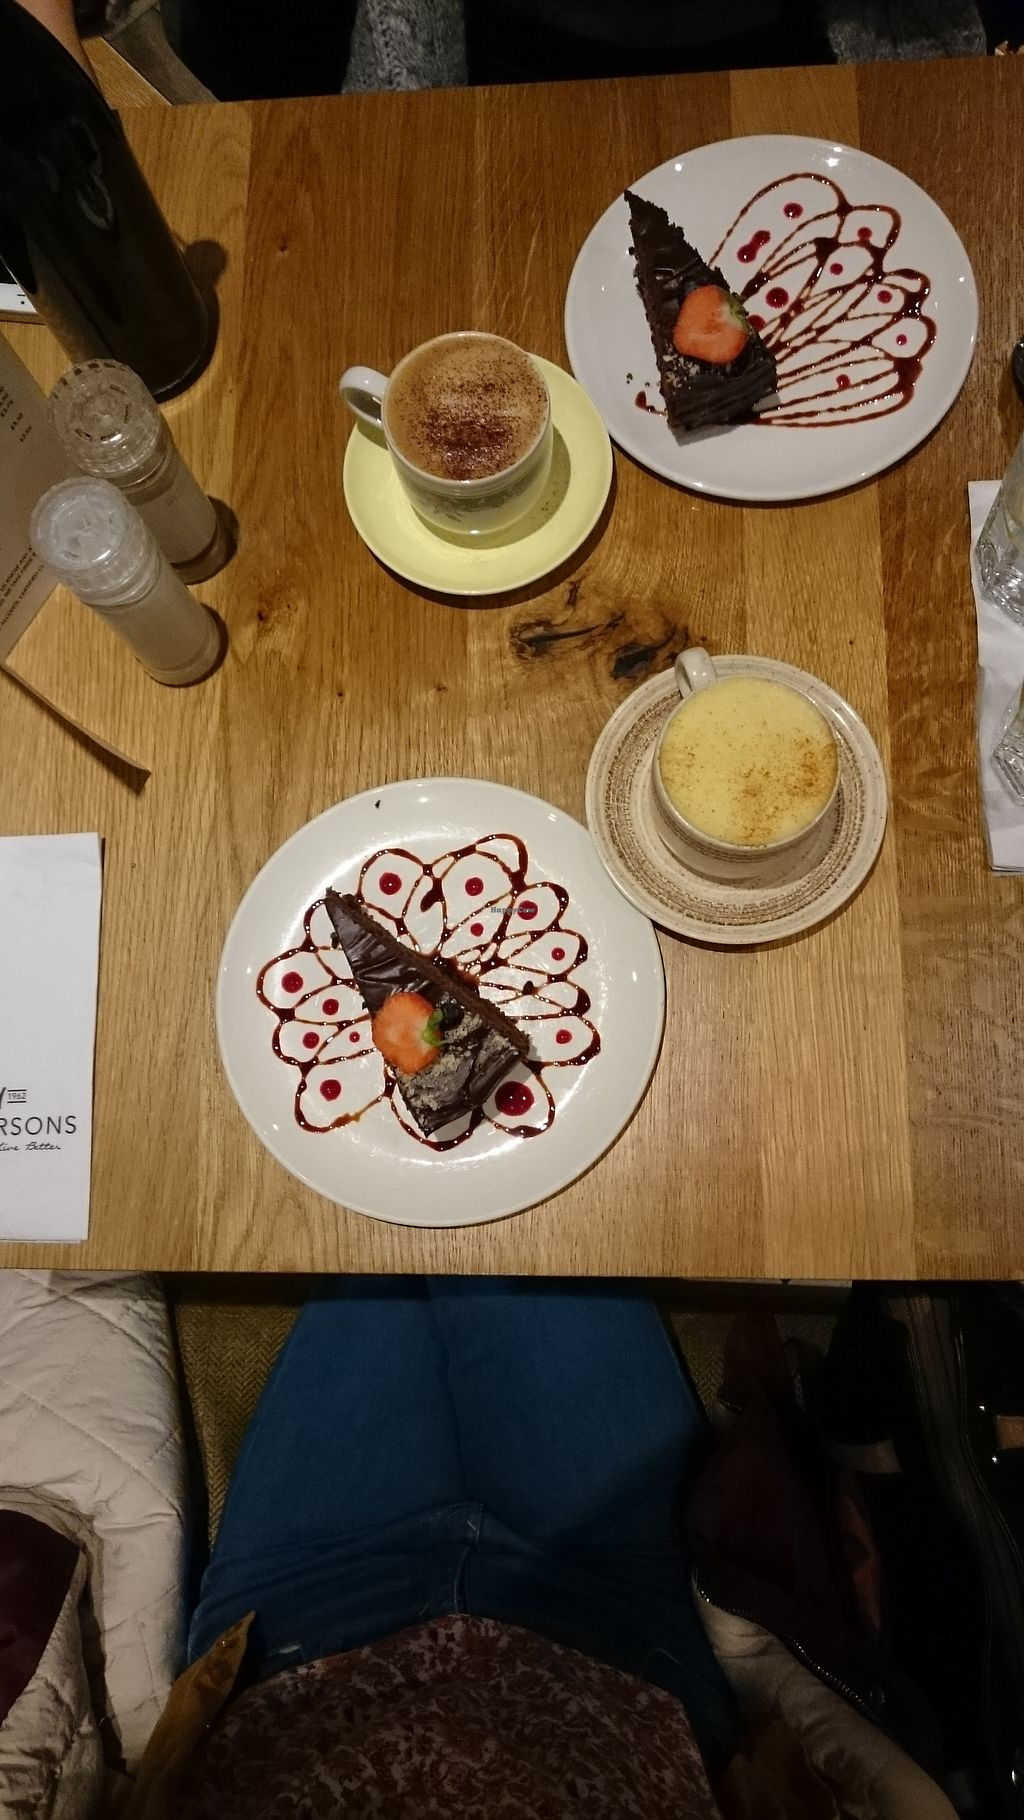 """Photo of Henderson's Vegan  by <a href=""""/members/profile/Layra"""">Layra</a> <br/>Chocolate nut cake <br/> October 24, 2017  - <a href='/contact/abuse/image/59873/318258'>Report</a>"""